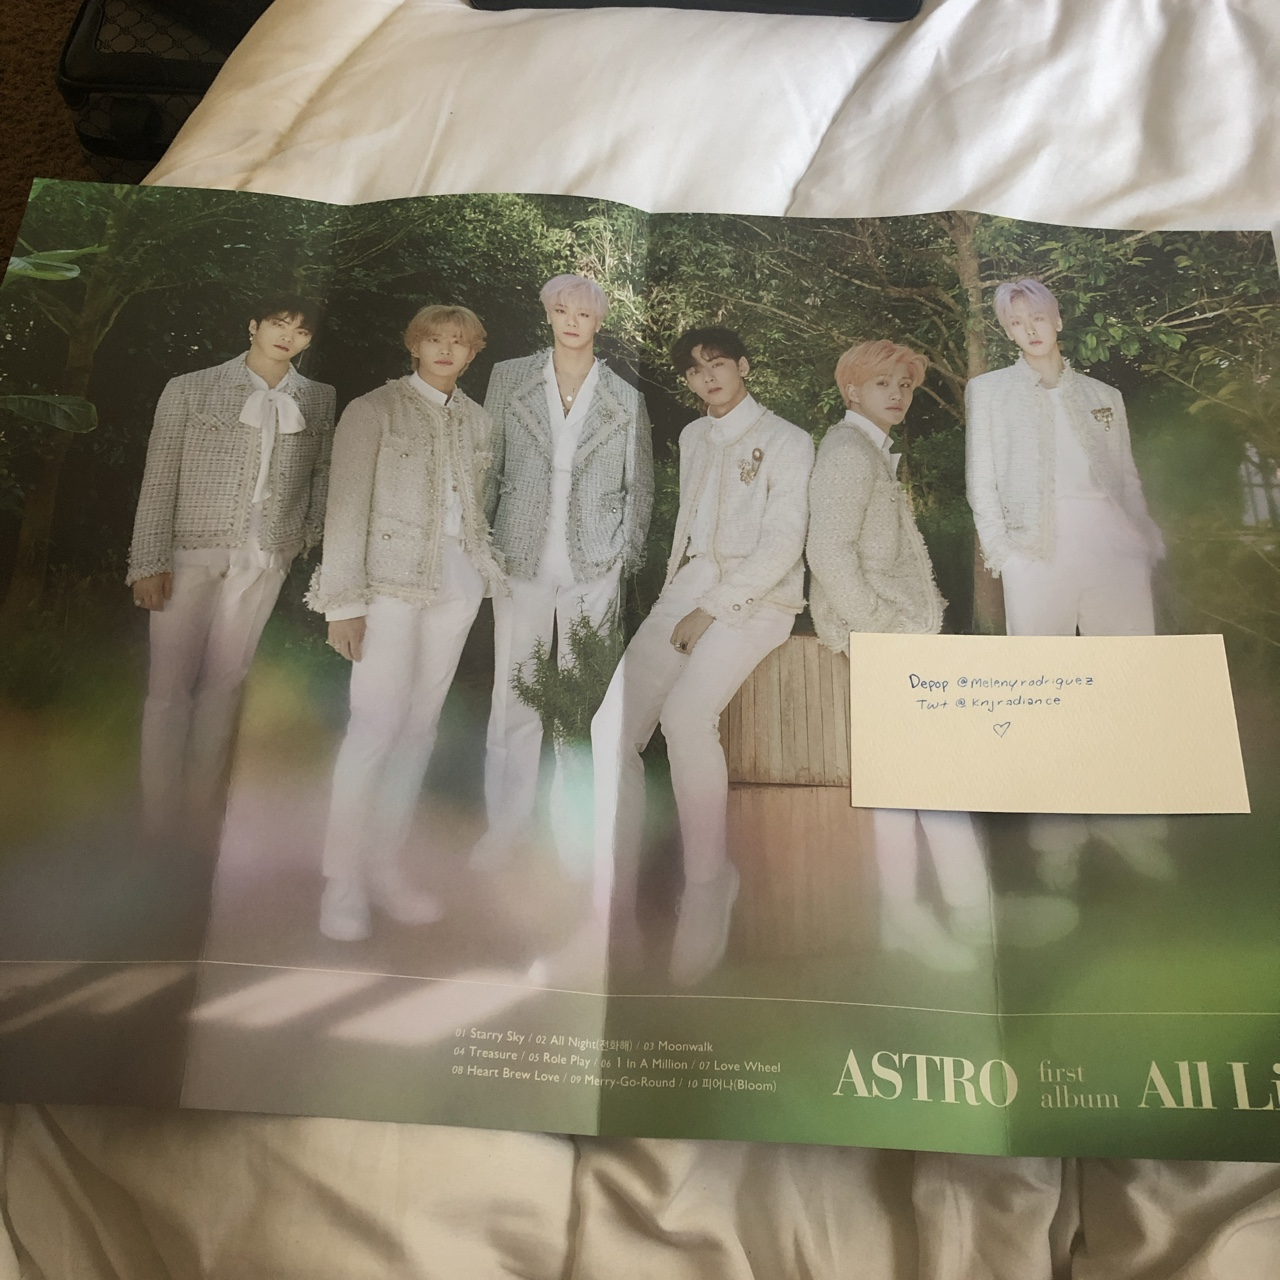 astro all light double sided poster 🌱 message before    - Depop